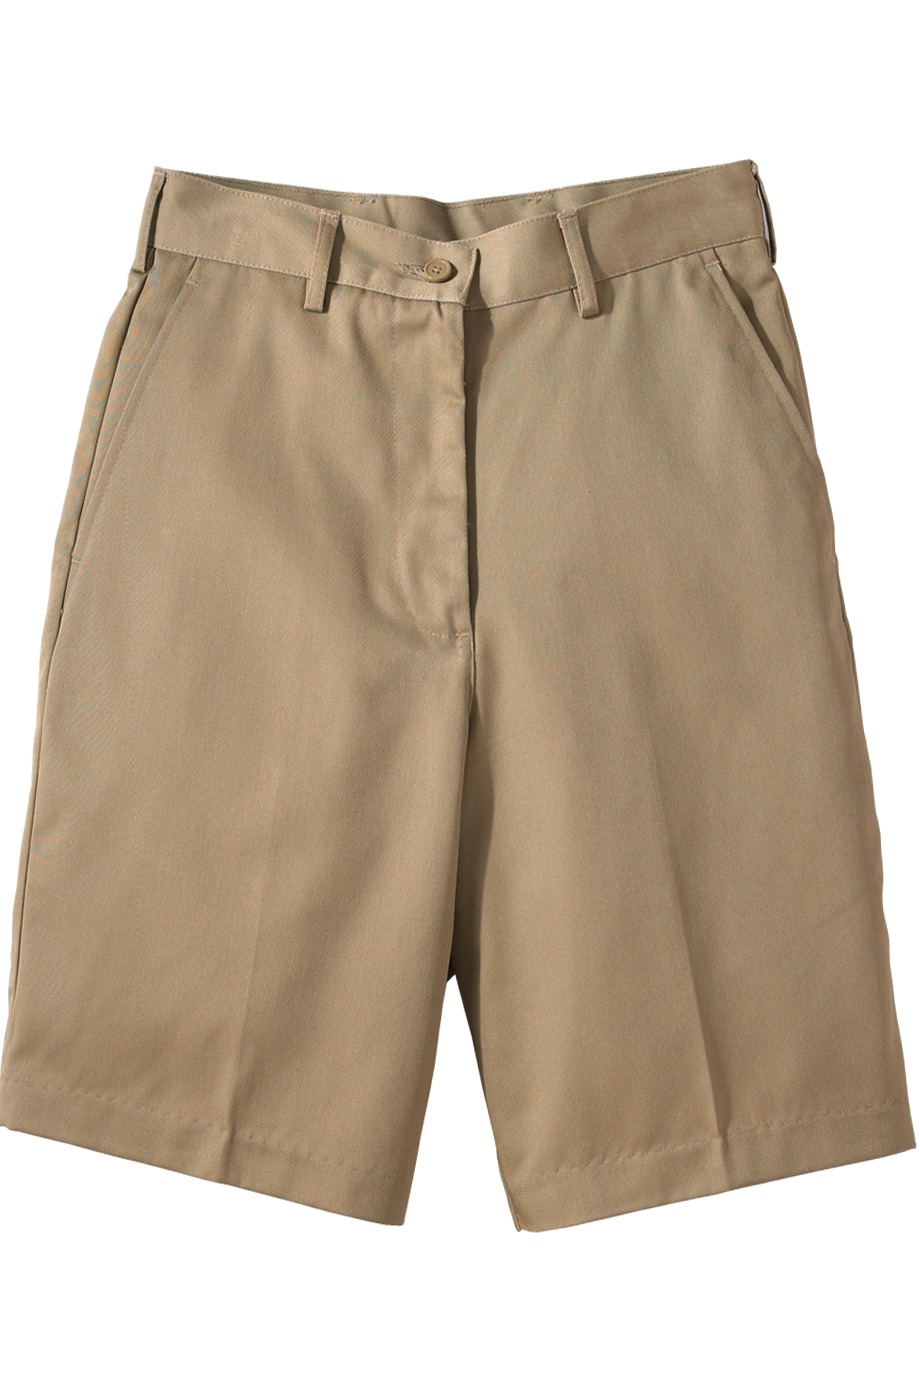 Edwards Garment 8465 - Women's Utility Flat Front Short